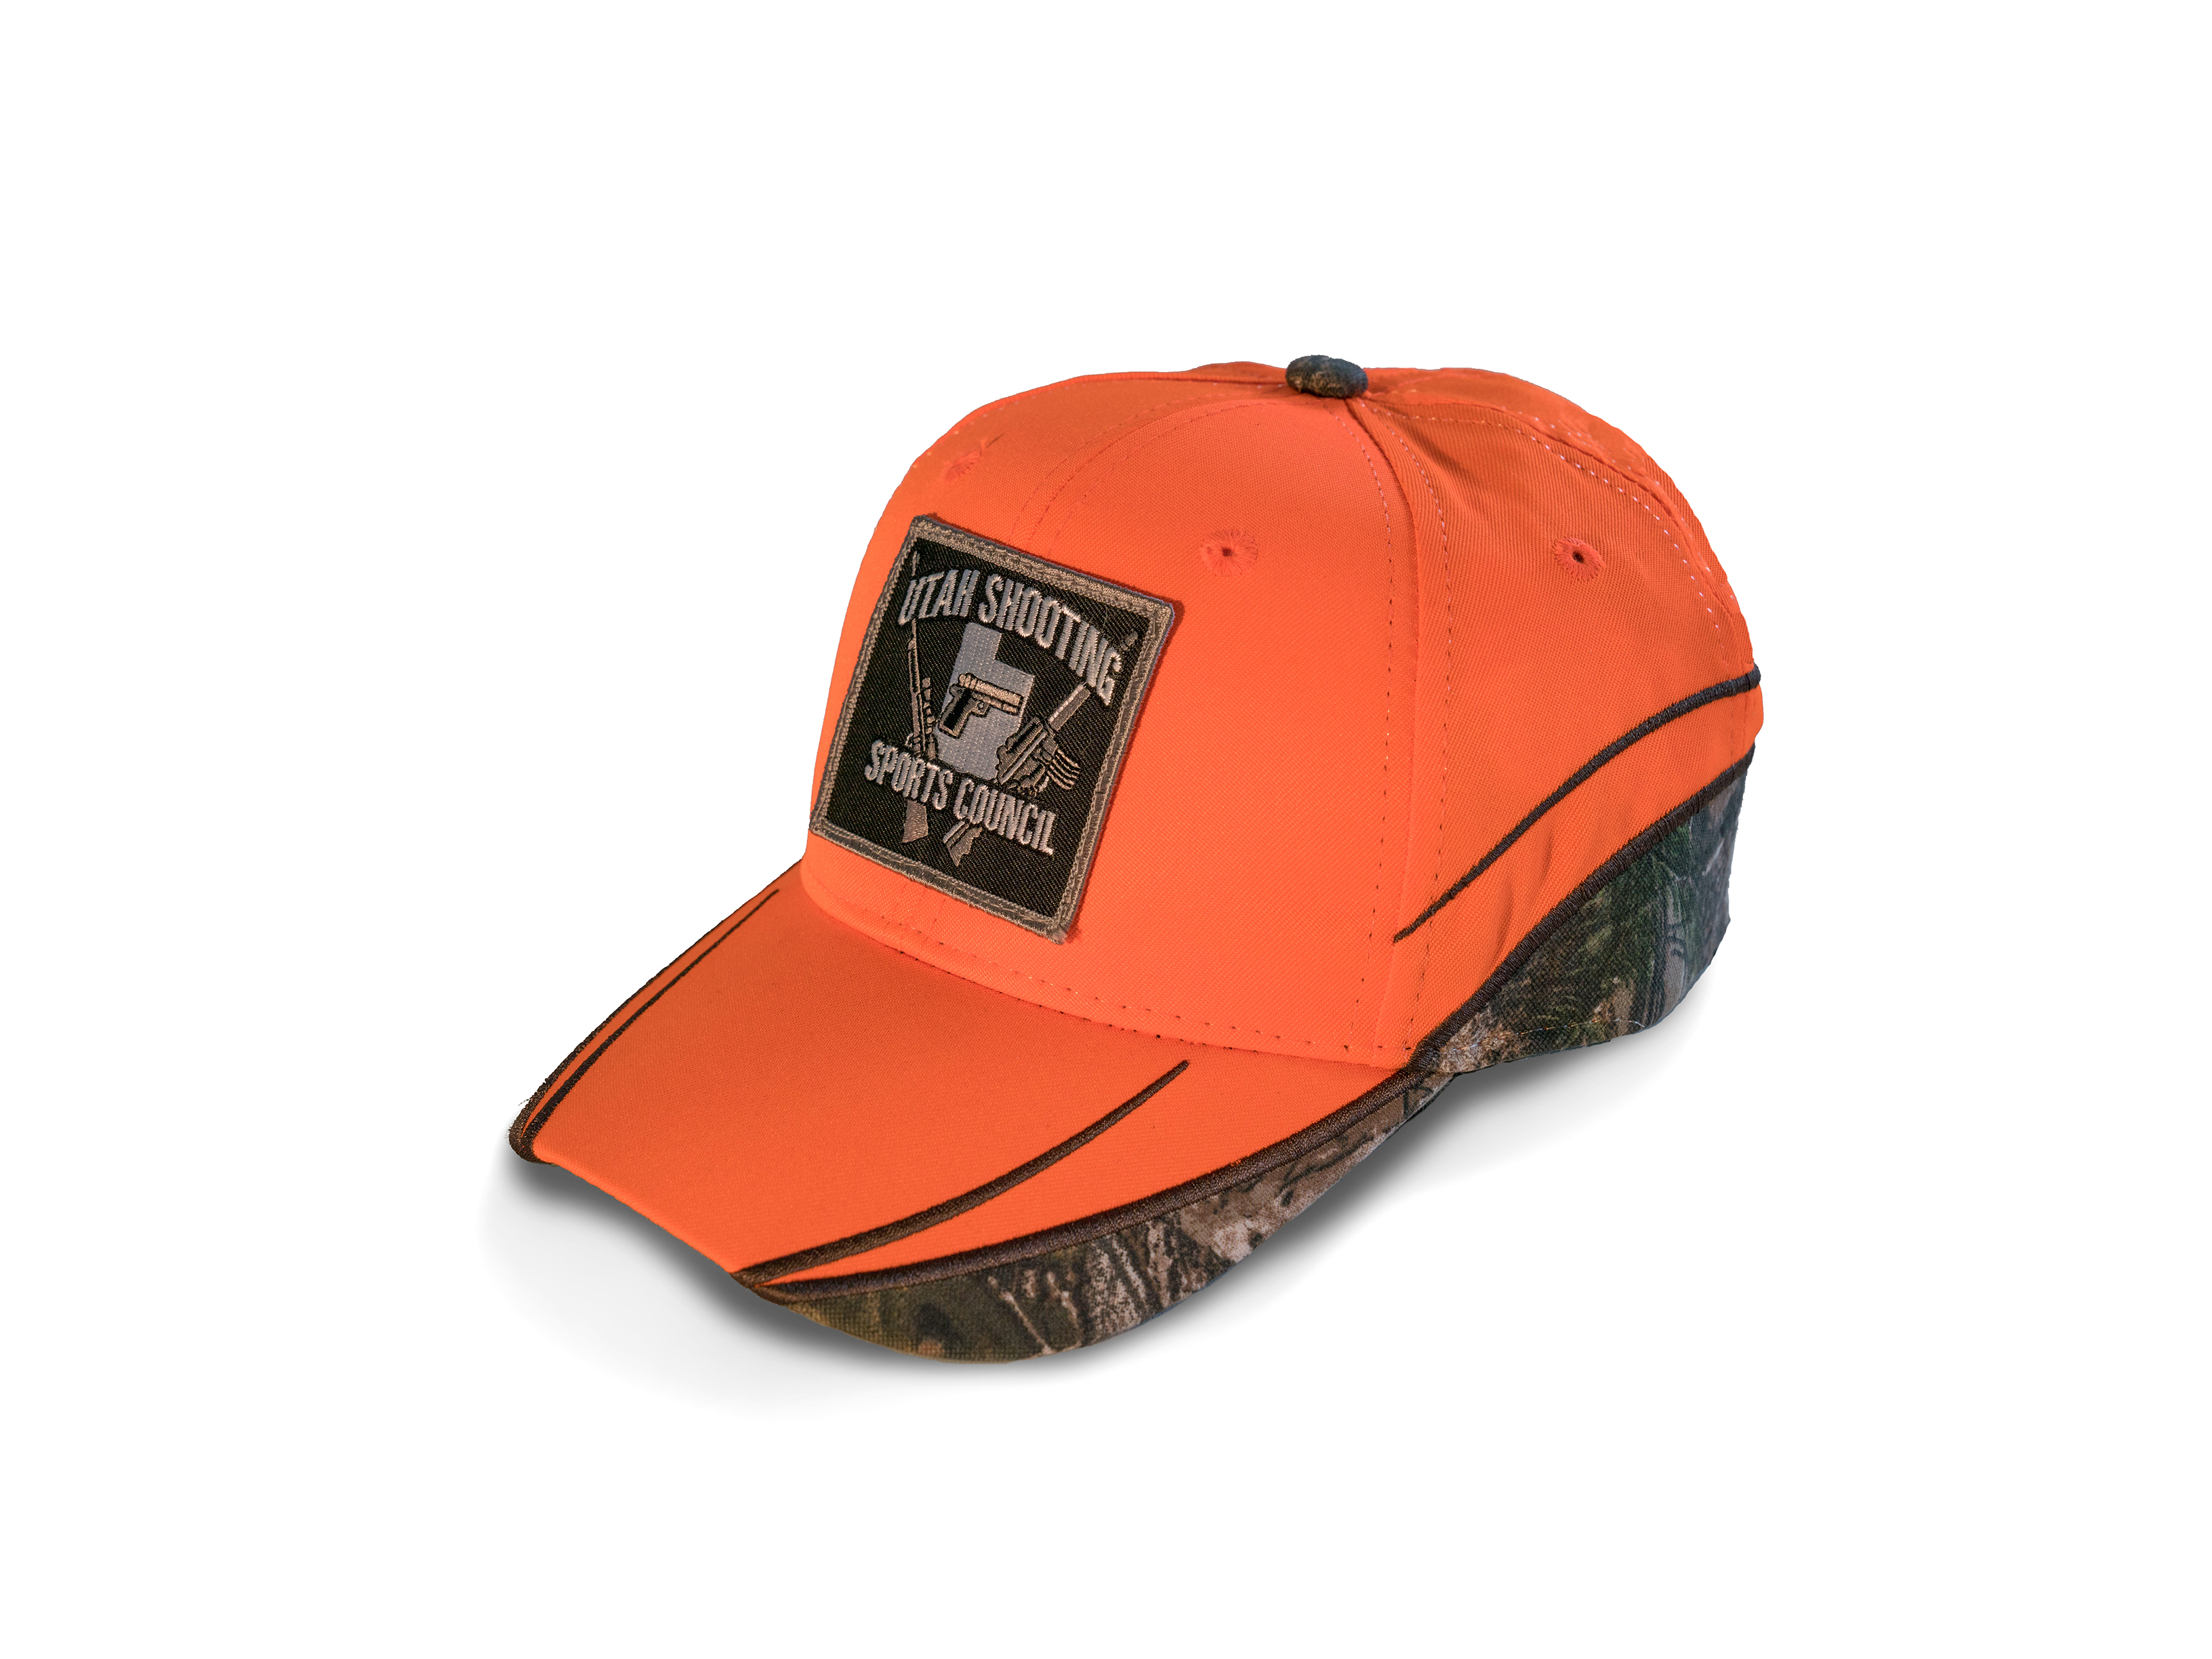 USSC Hat, Semi-structured Orange and Camo with Cross Guns Patch